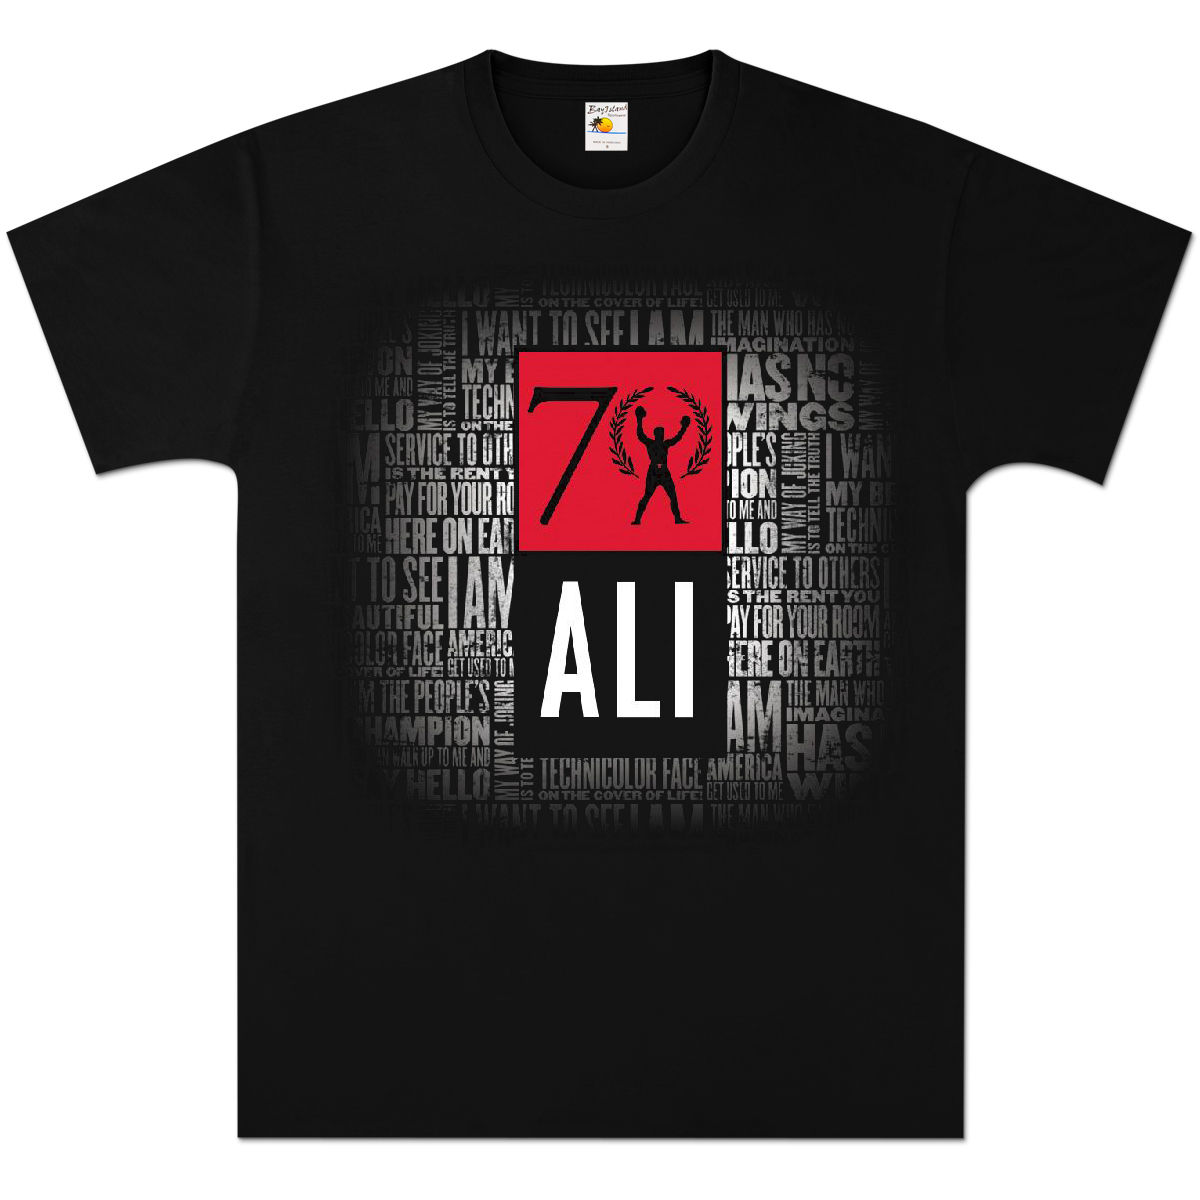 muhammad ali exclusive 70th birthday t shirt. Black Bedroom Furniture Sets. Home Design Ideas